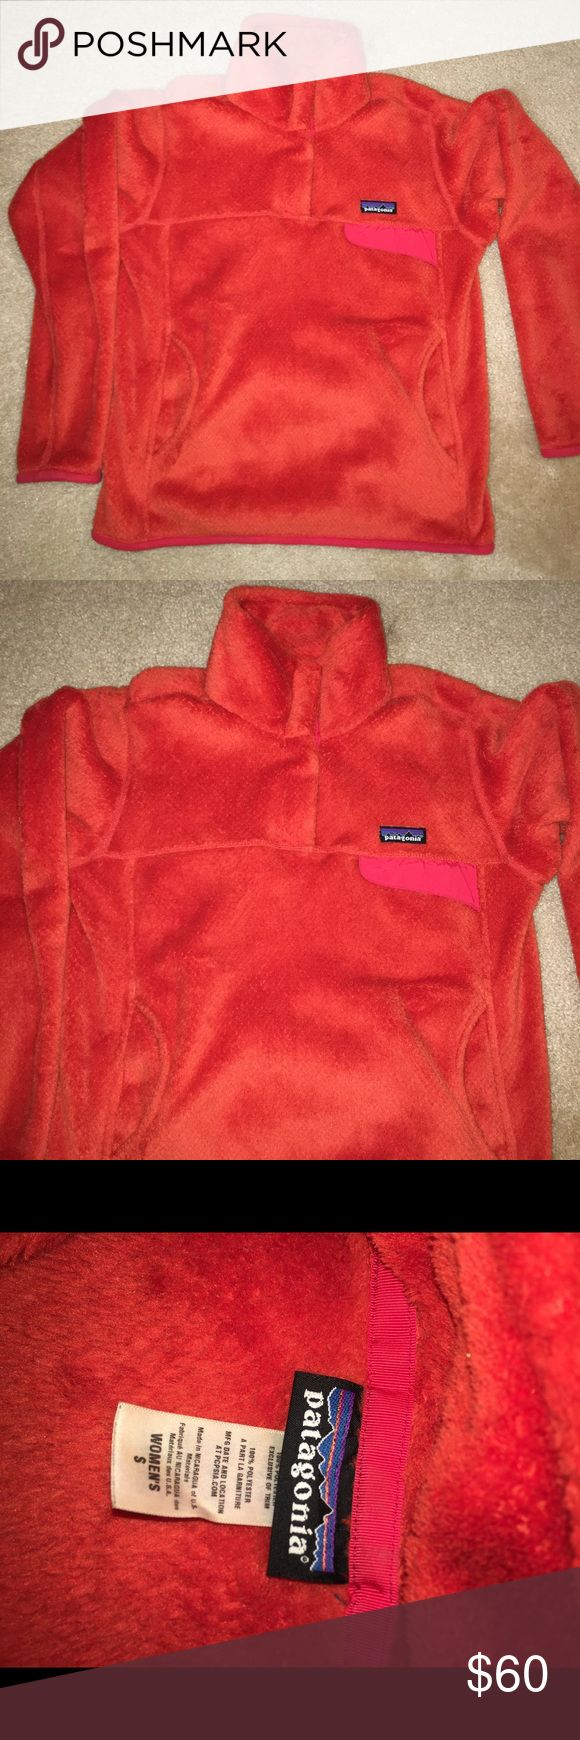 Women's Patagonia Re-Tool Snap-T Fleece Pullover Pullover color is Carve Coral-Spiced, size small. Has only been worn a few times and is in great condition! Patagonia Jackets & Coats